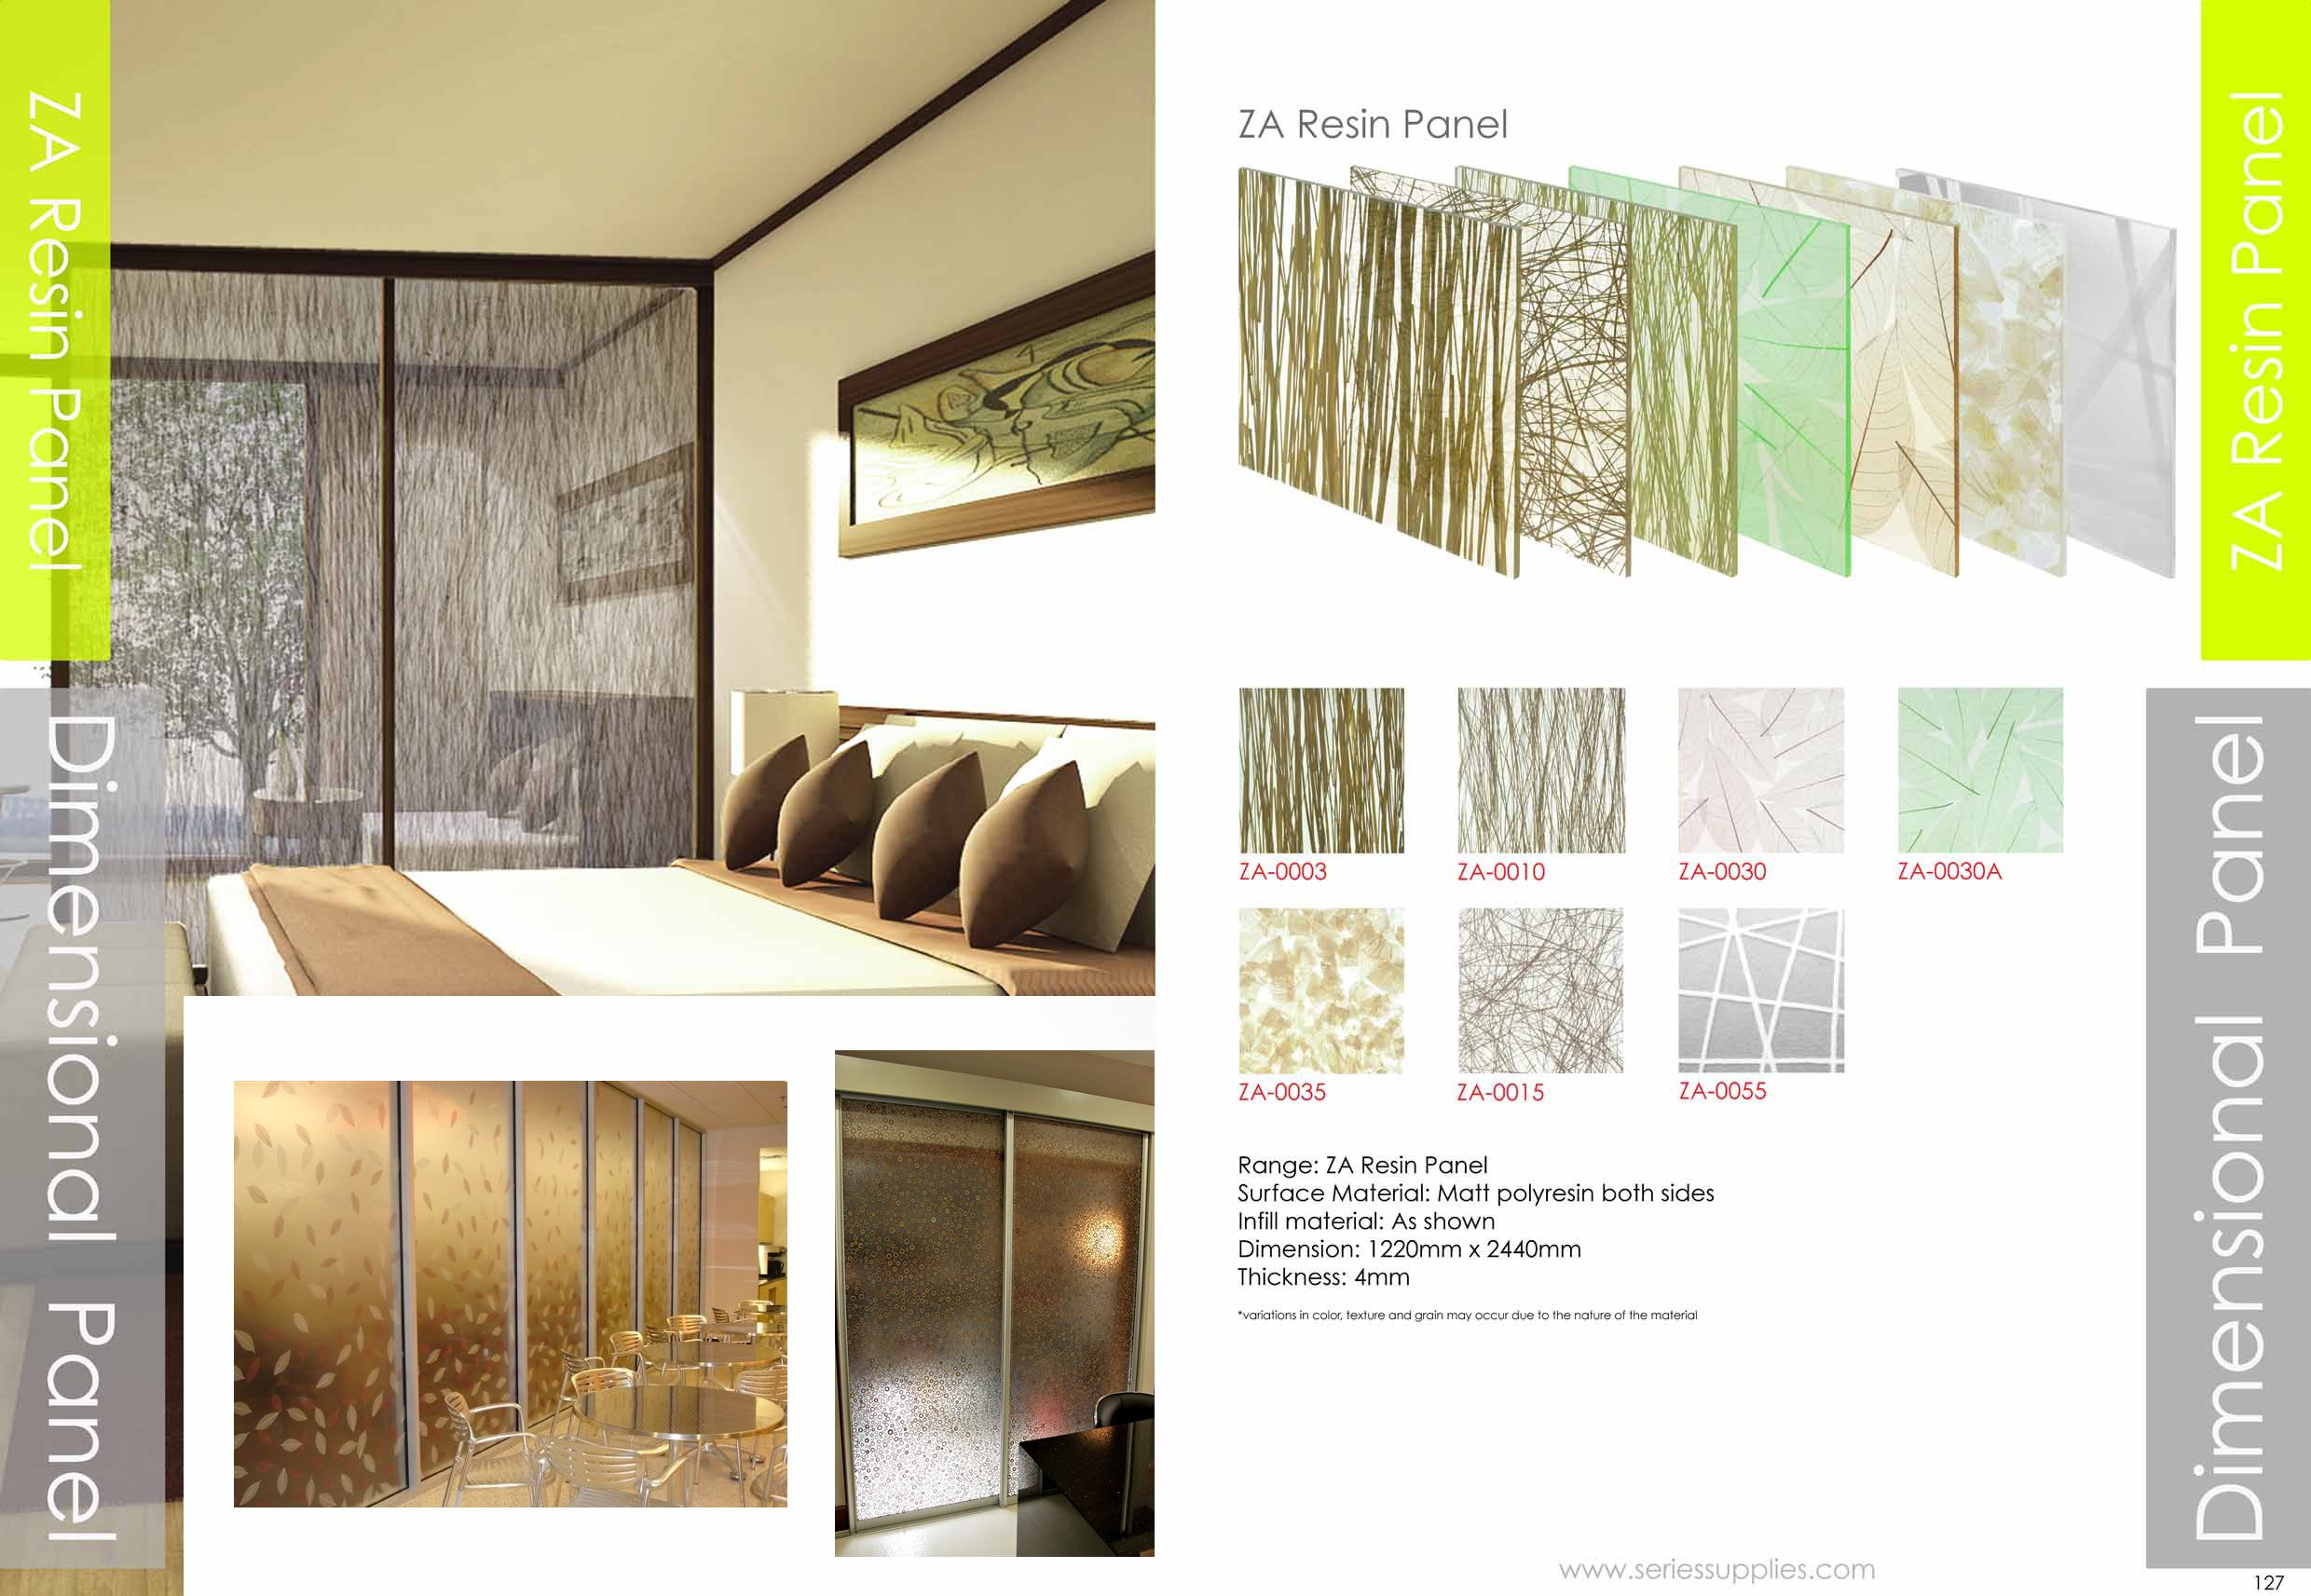 Translucent Resin Panels Are Used In Architectural Design Work As